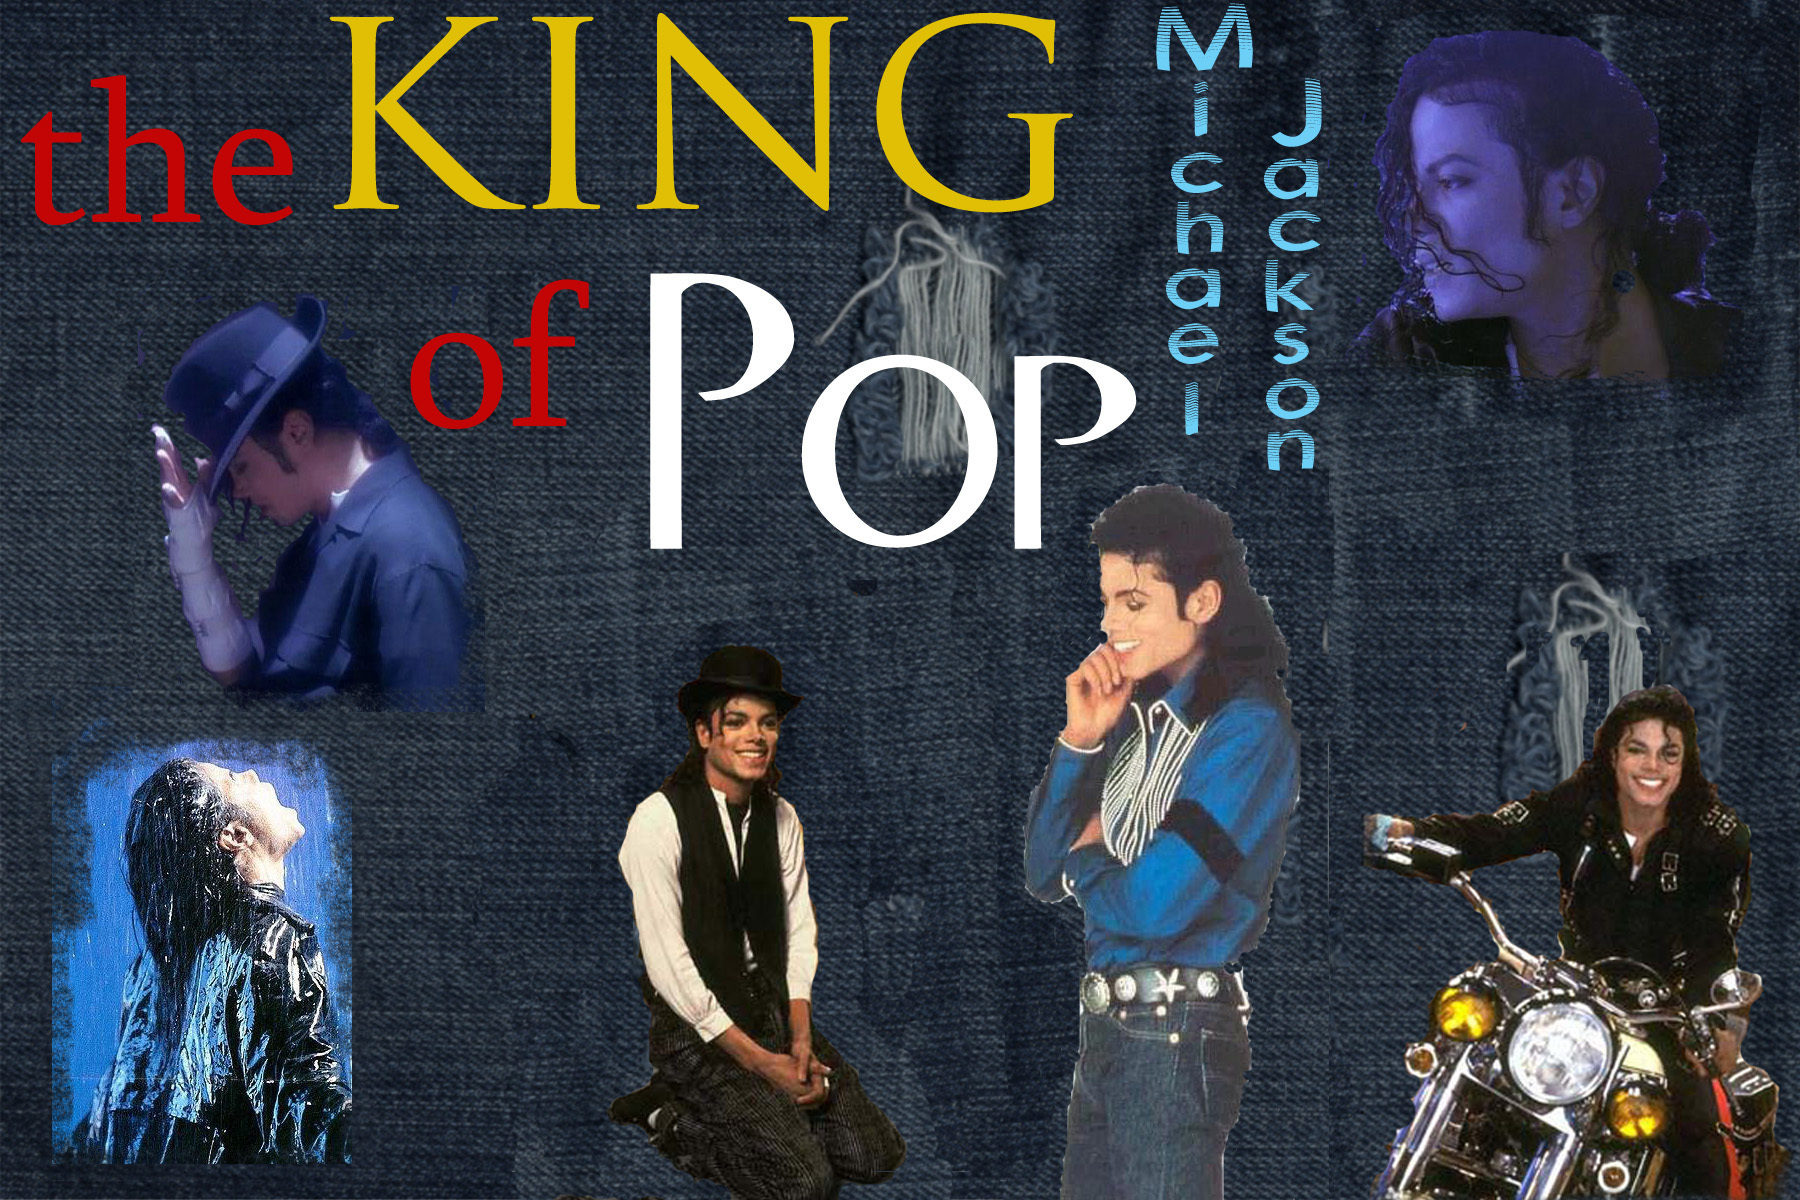 michael jackson live wallpaper - wallpapersafari